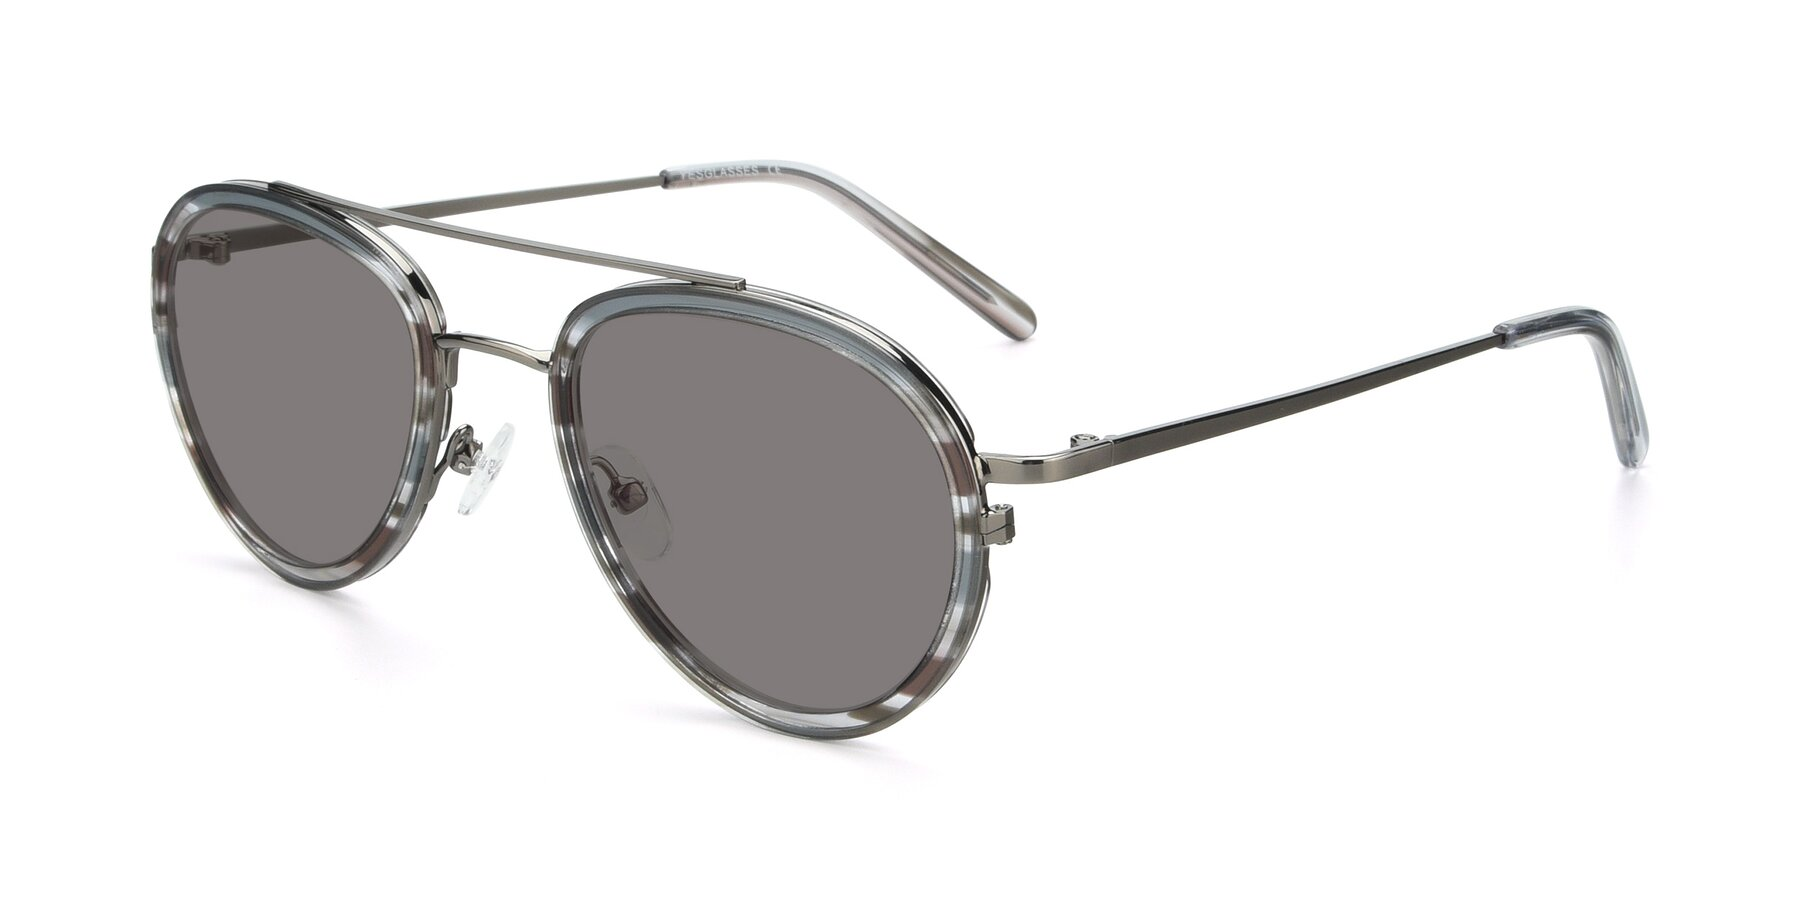 Angle of 9554 in Gun-Transparent with Medium Gray Tinted Lenses